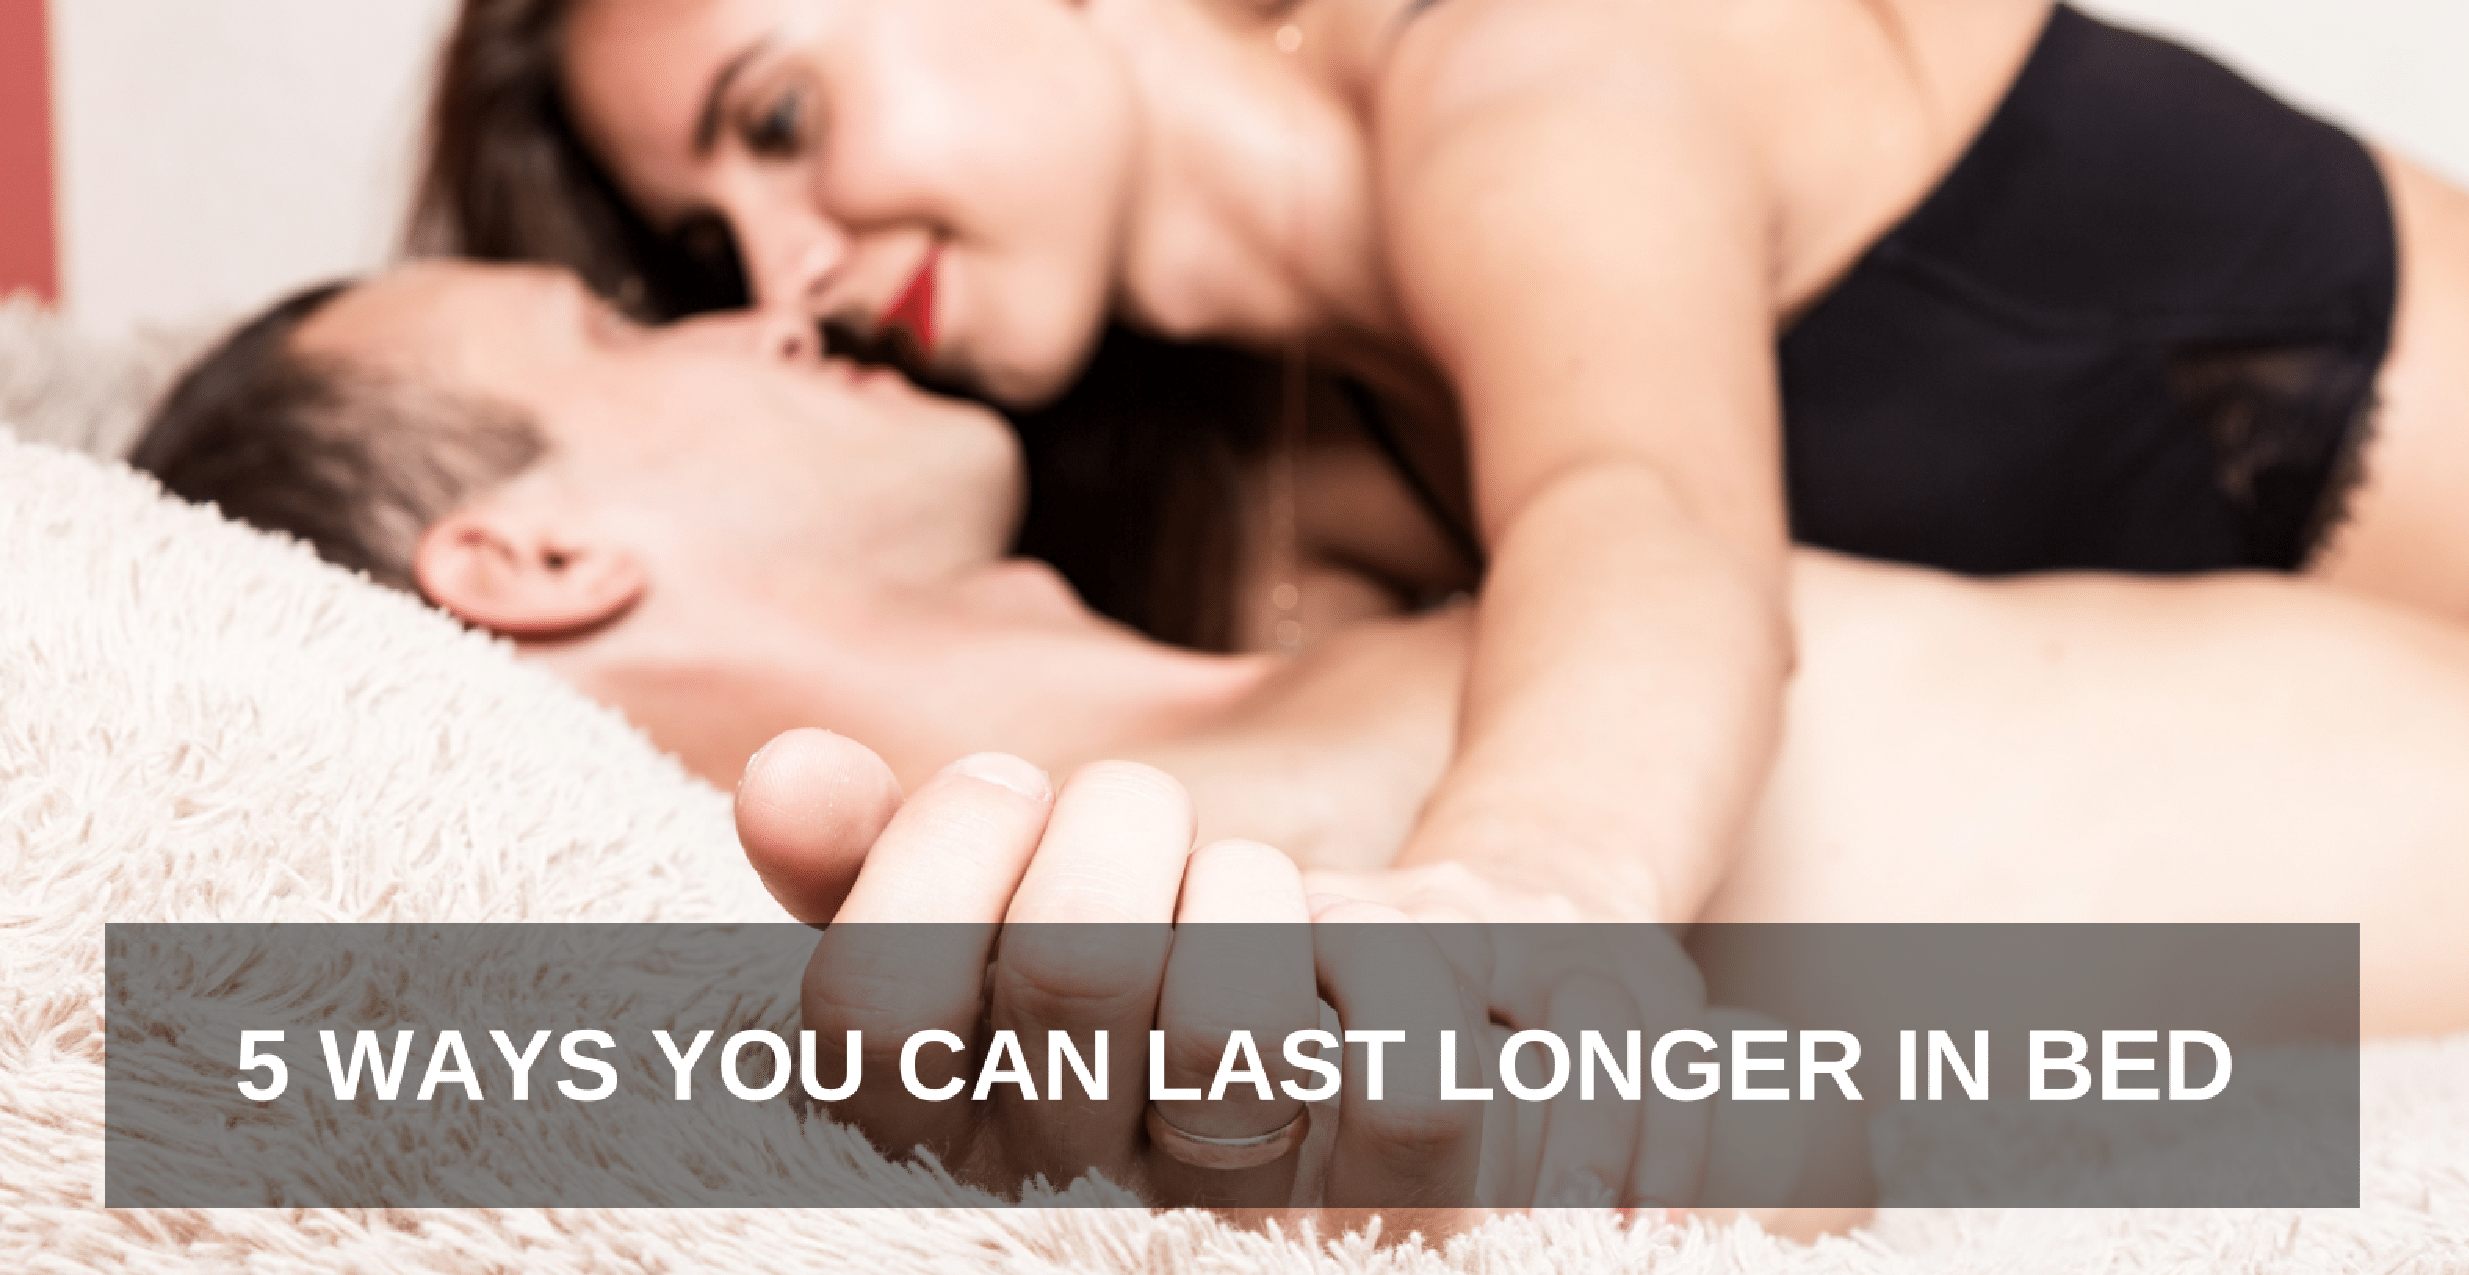 sex tips to last longer